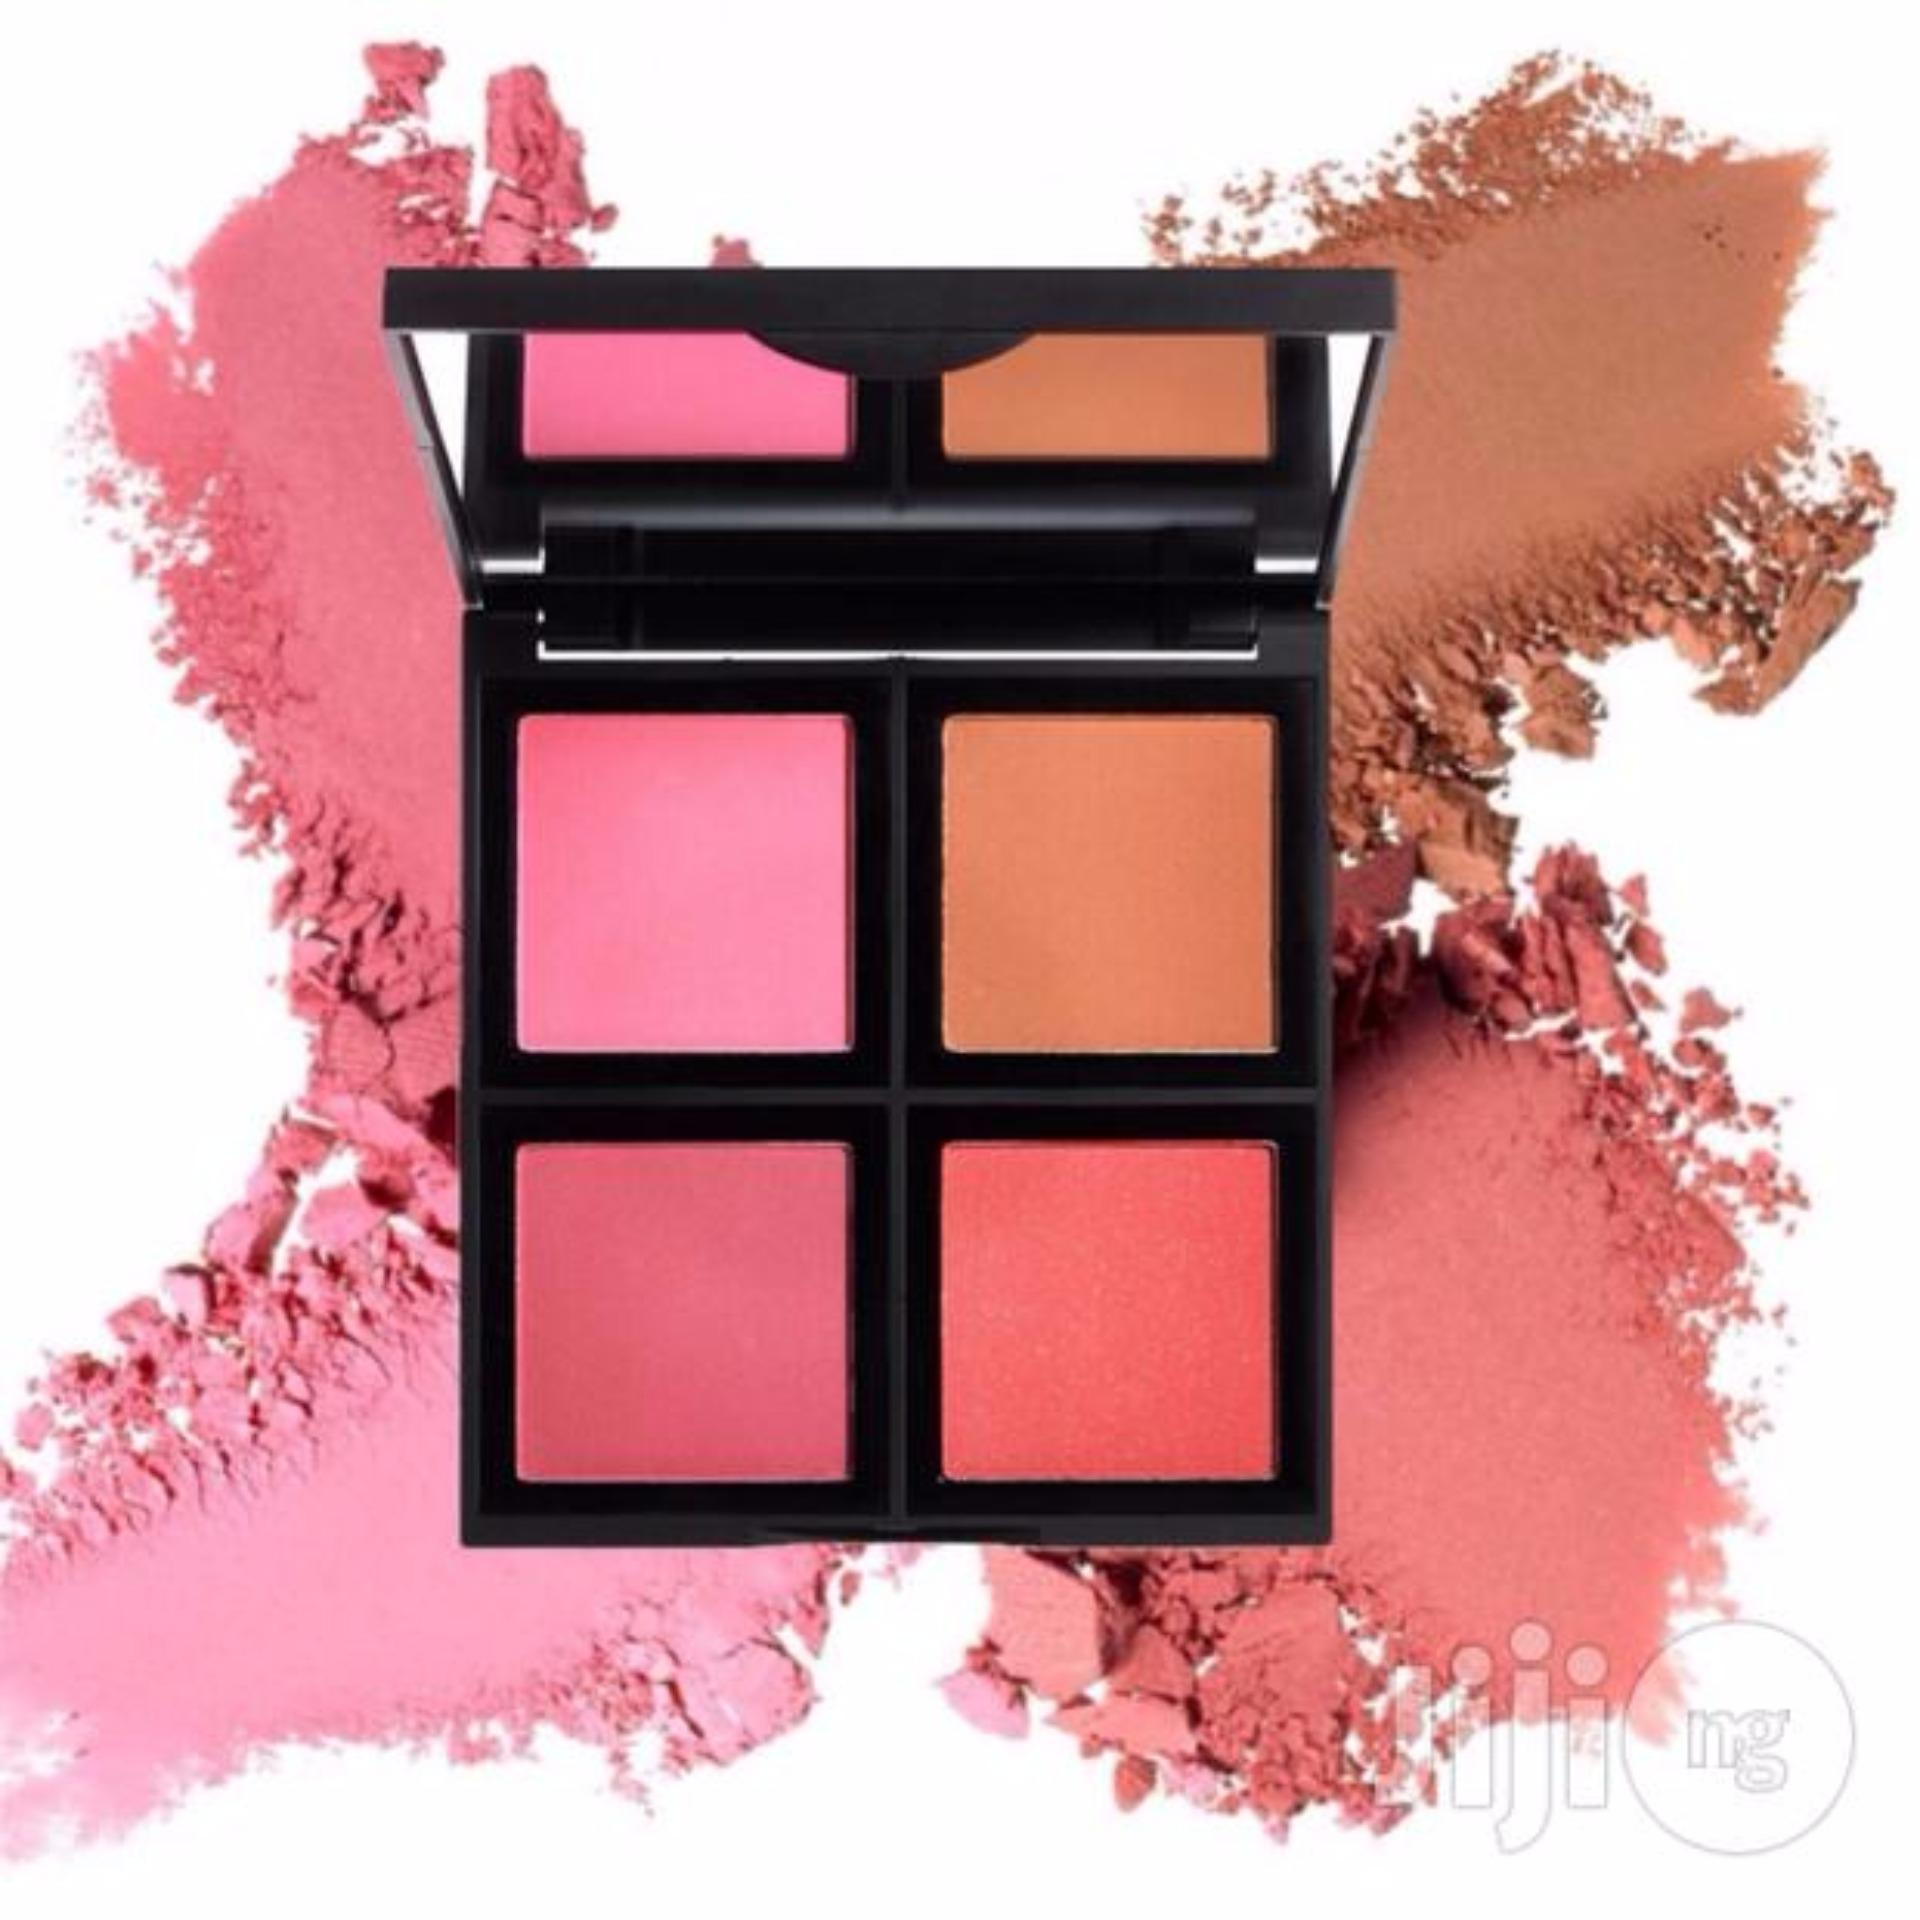 Elf Blush On Palette Original USA With Packaging - Light